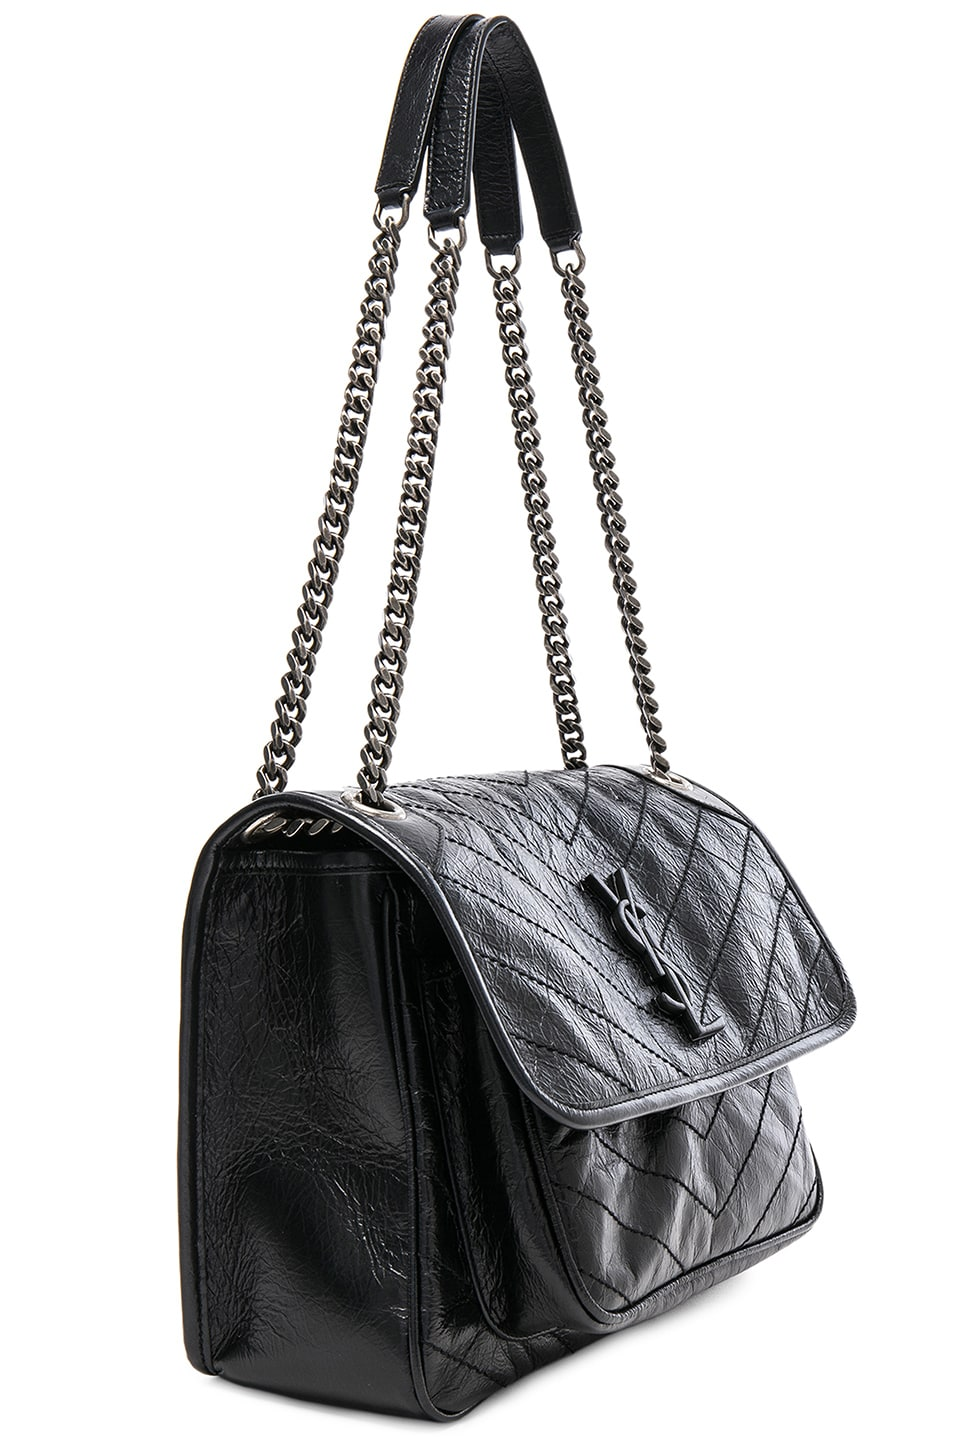 Saint Laurent Medium Niki Monogramme Chain Bag In Black Fwrd